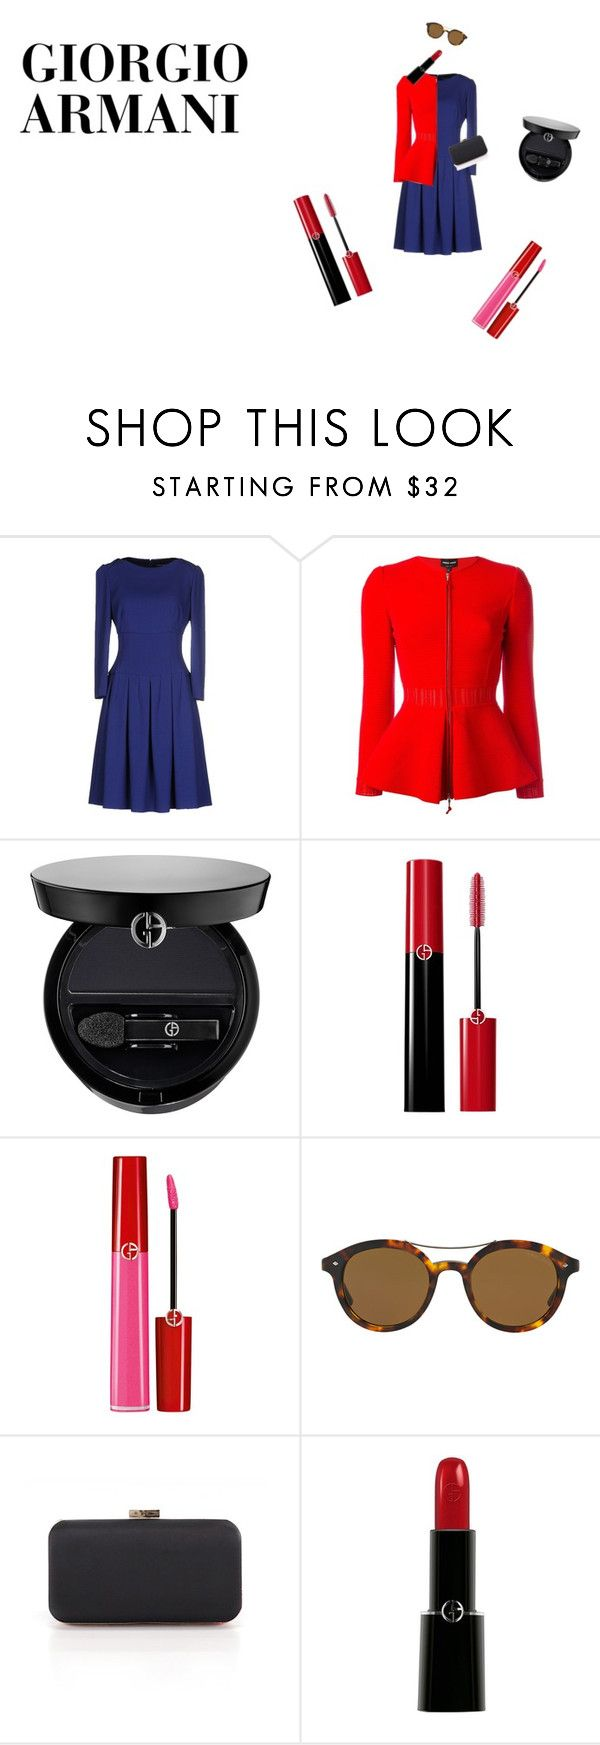 """""""#brand"""" by ermy9 ❤ liked on Polyvore featuring Giorgio Armani"""